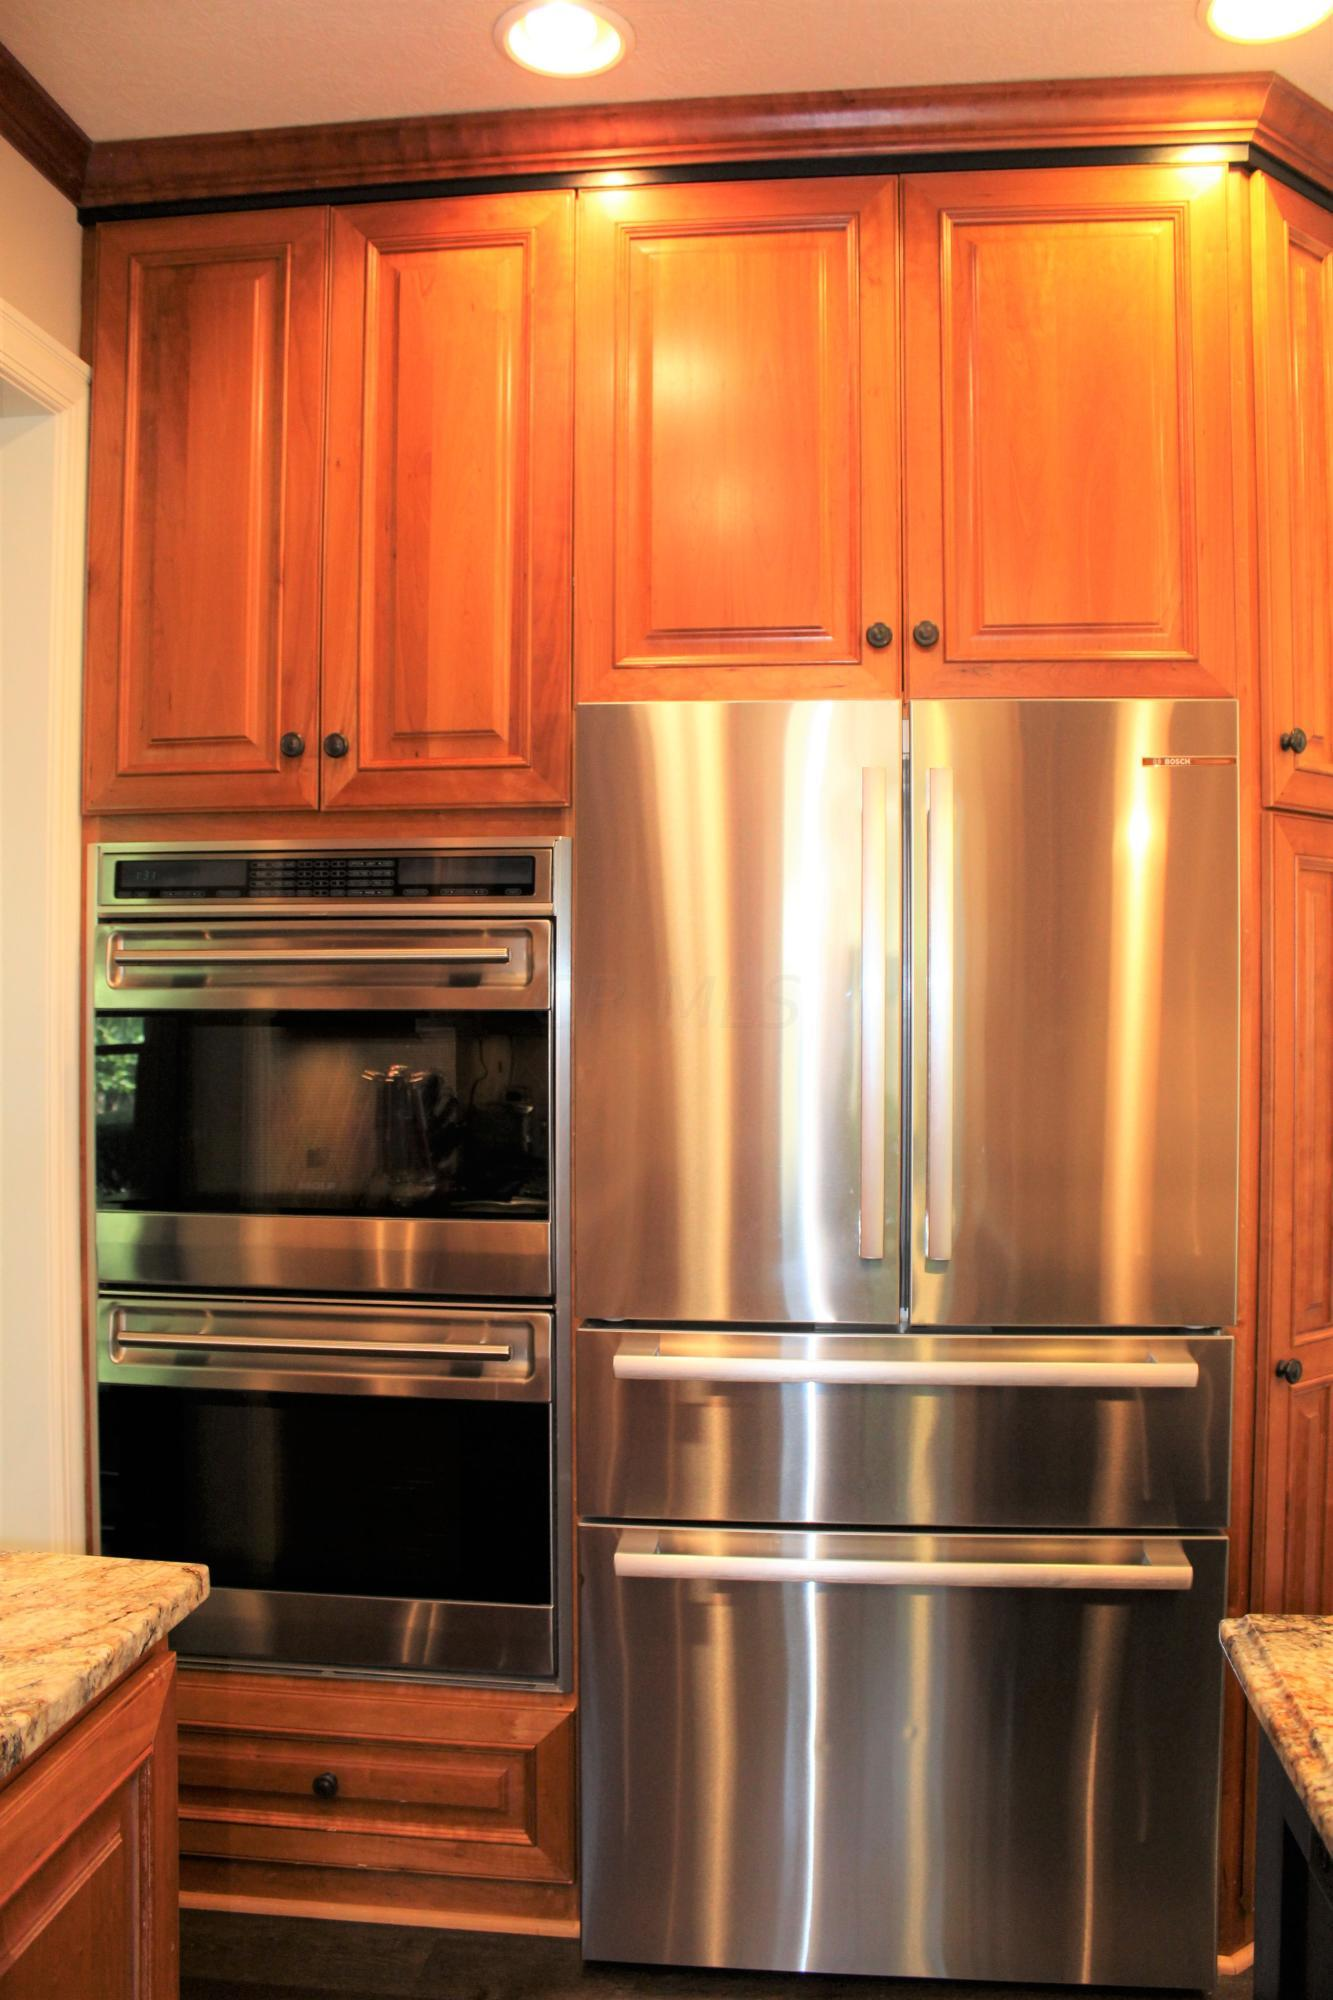 Wolf double oven / Bosch Refrigerator